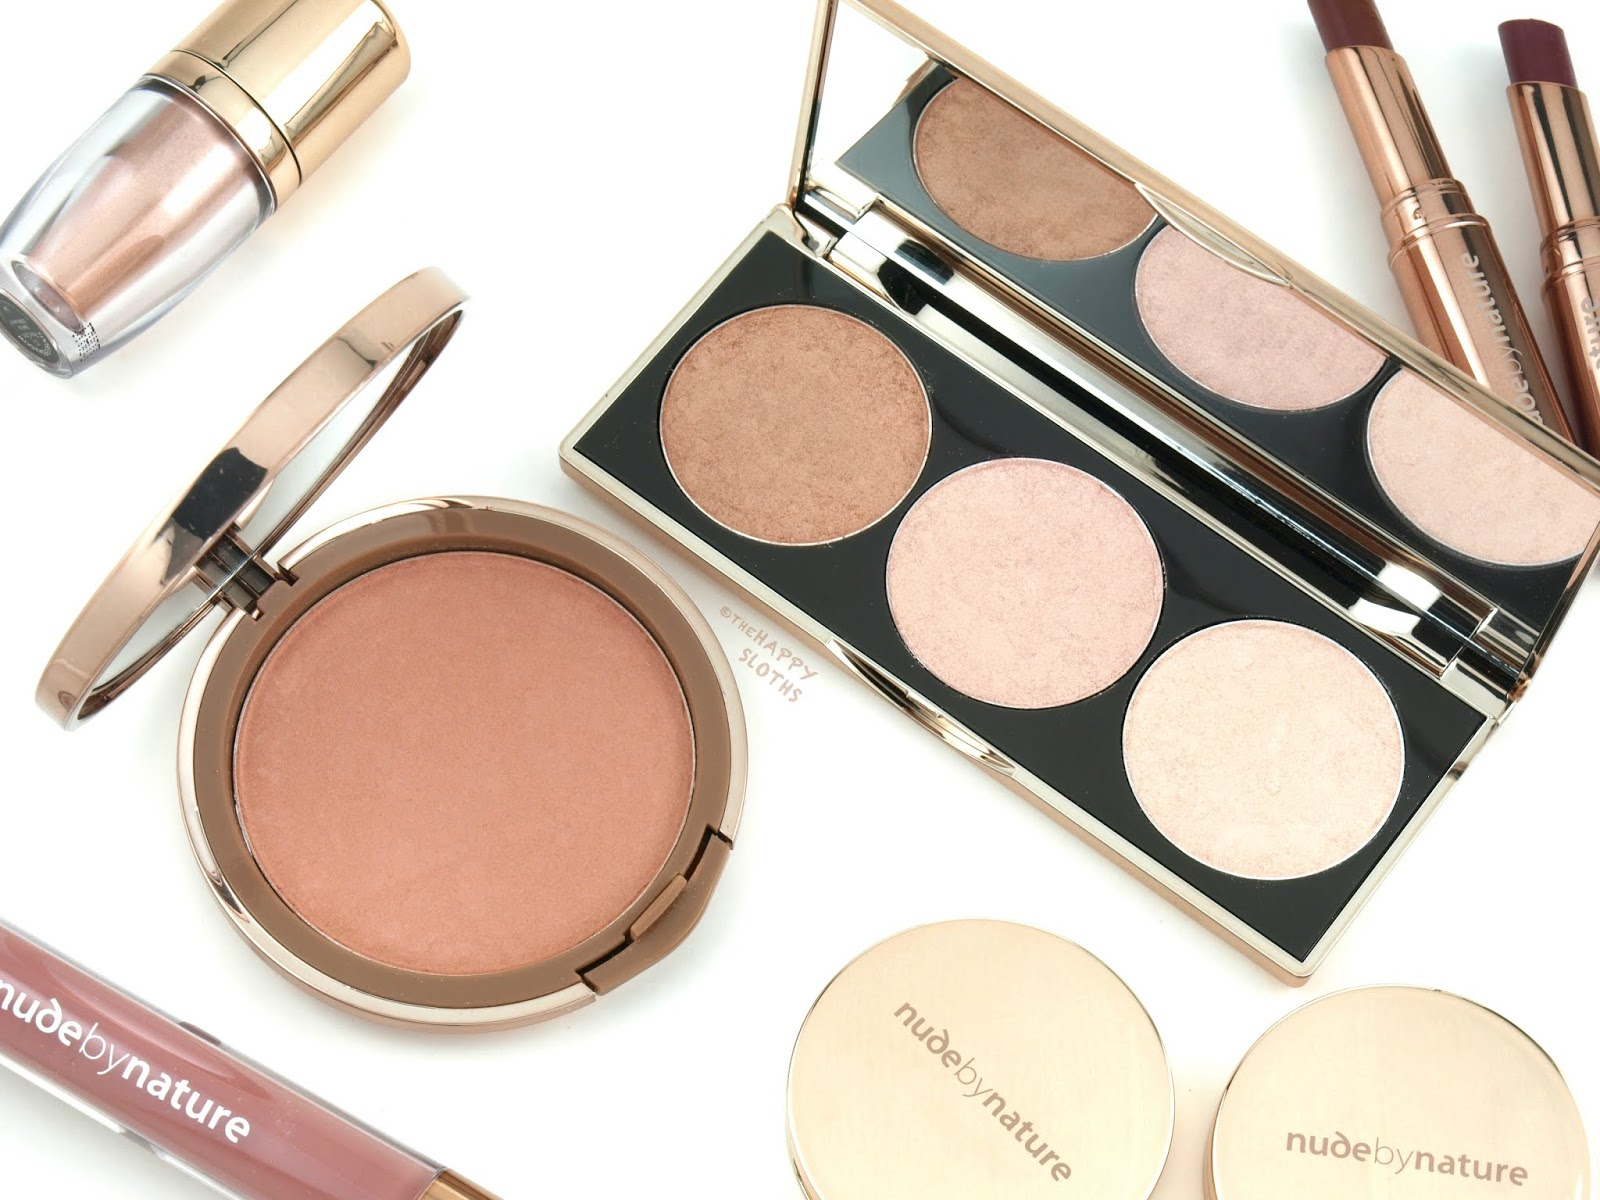 Nude by Nature   Cashmere Pressed Blush & Highlight Palette: Review and Swatches